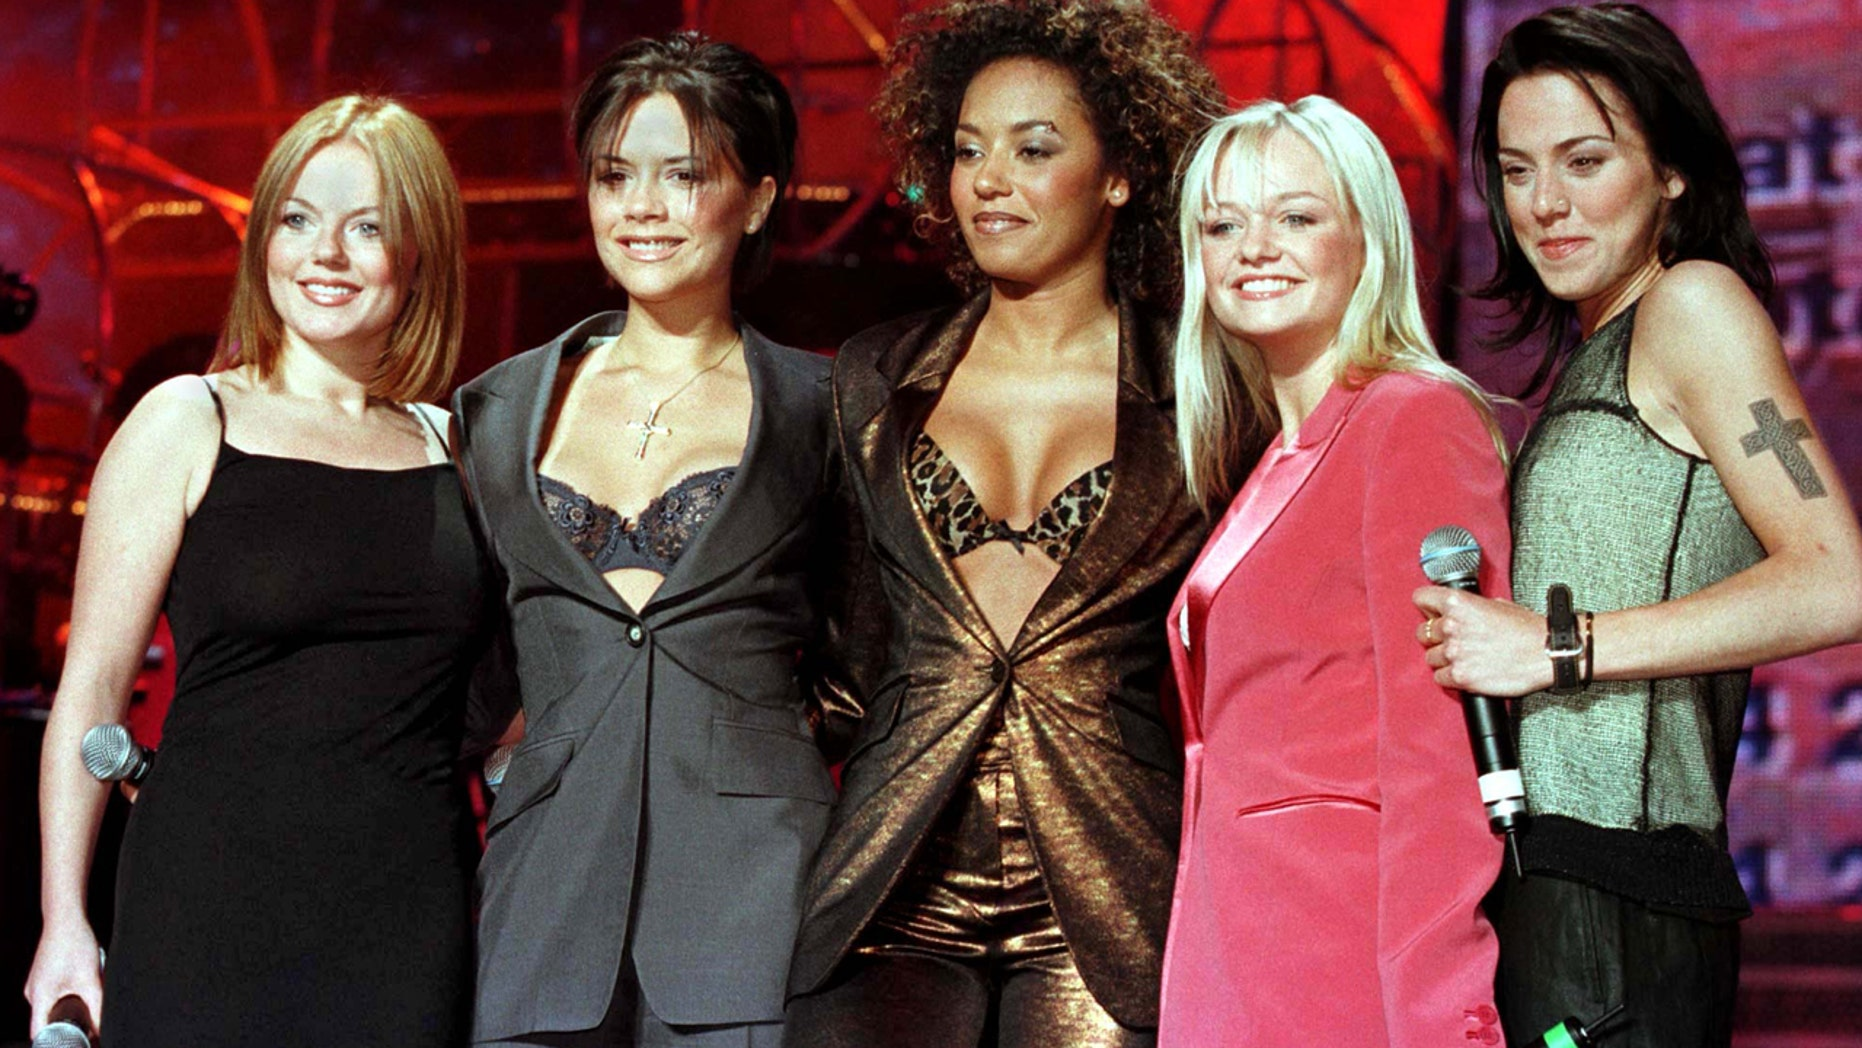 British band the Spice Girls (L-R) Geri, Victoria, Mel B., Emma and Mel C.